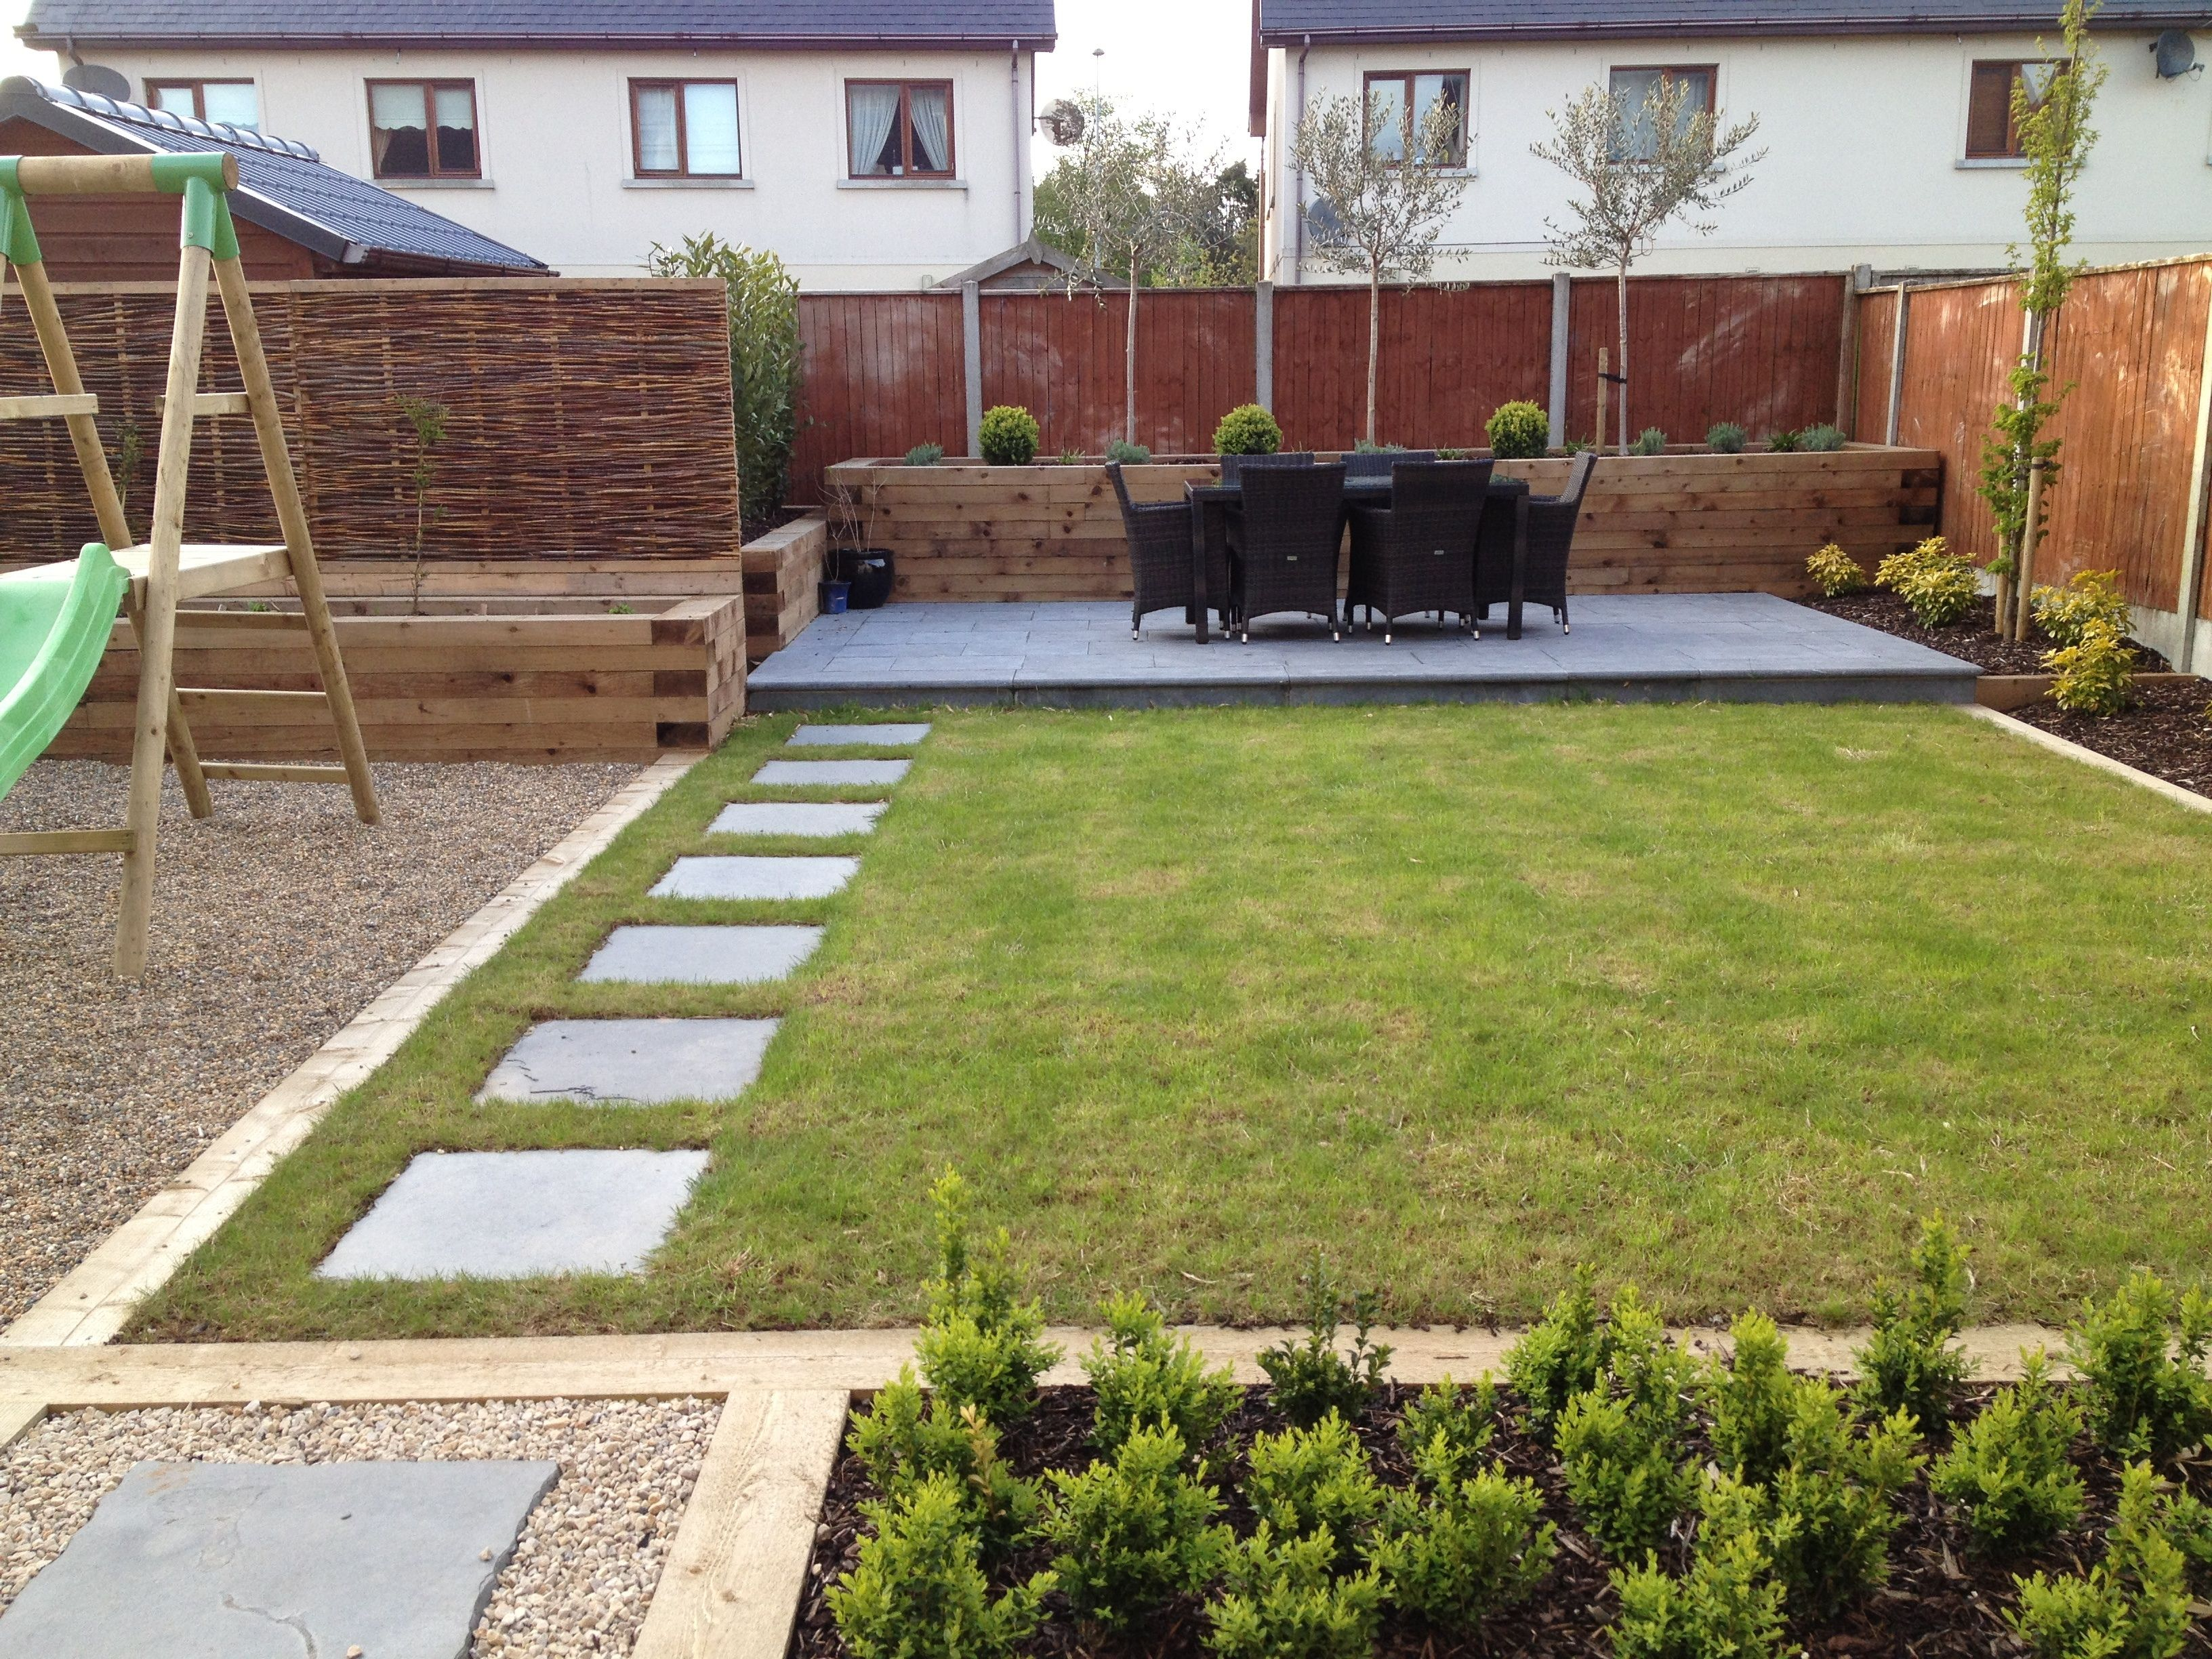 Family garden and landscaping low maintenance family for Garden design ideas without grass low maintenance